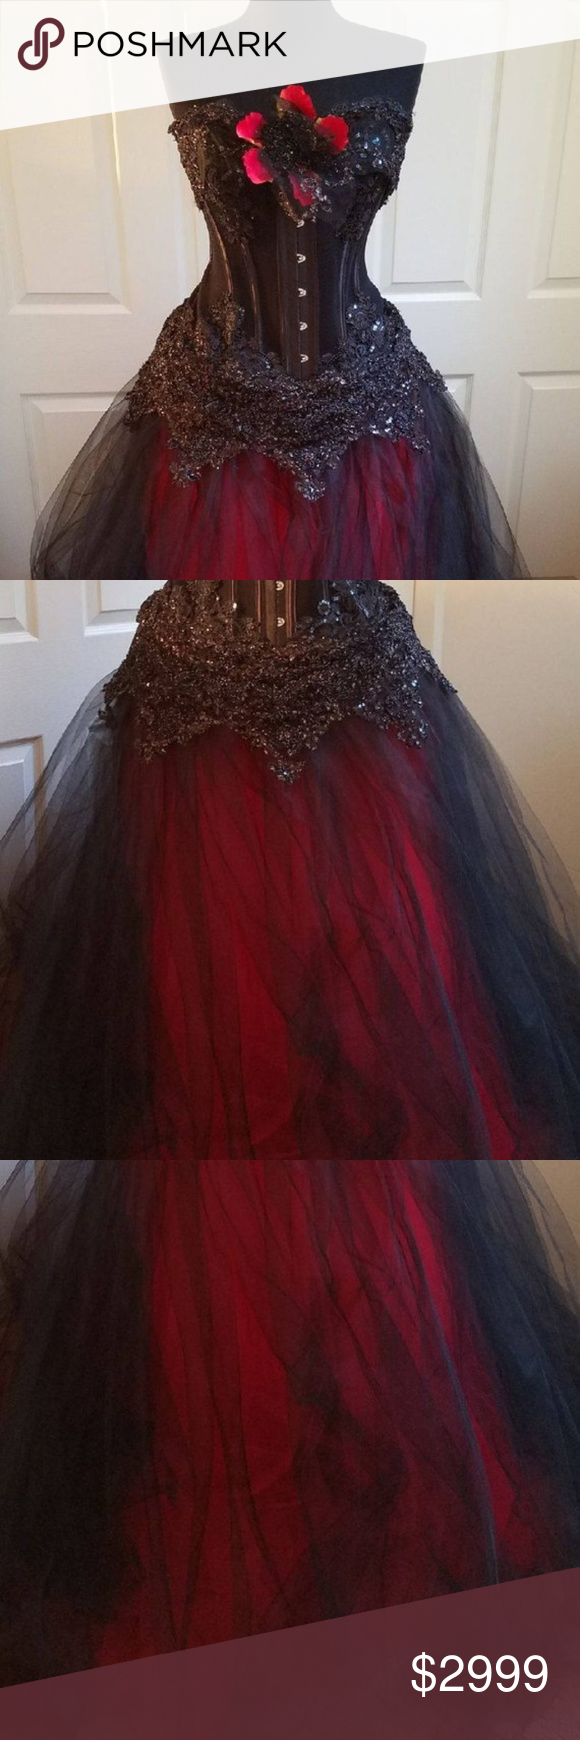 Lilith Goth Twilight Black Red Corset Ballgown Set Ball Gowns Goth Prom Dress Red Corset [ 1740 x 580 Pixel ]